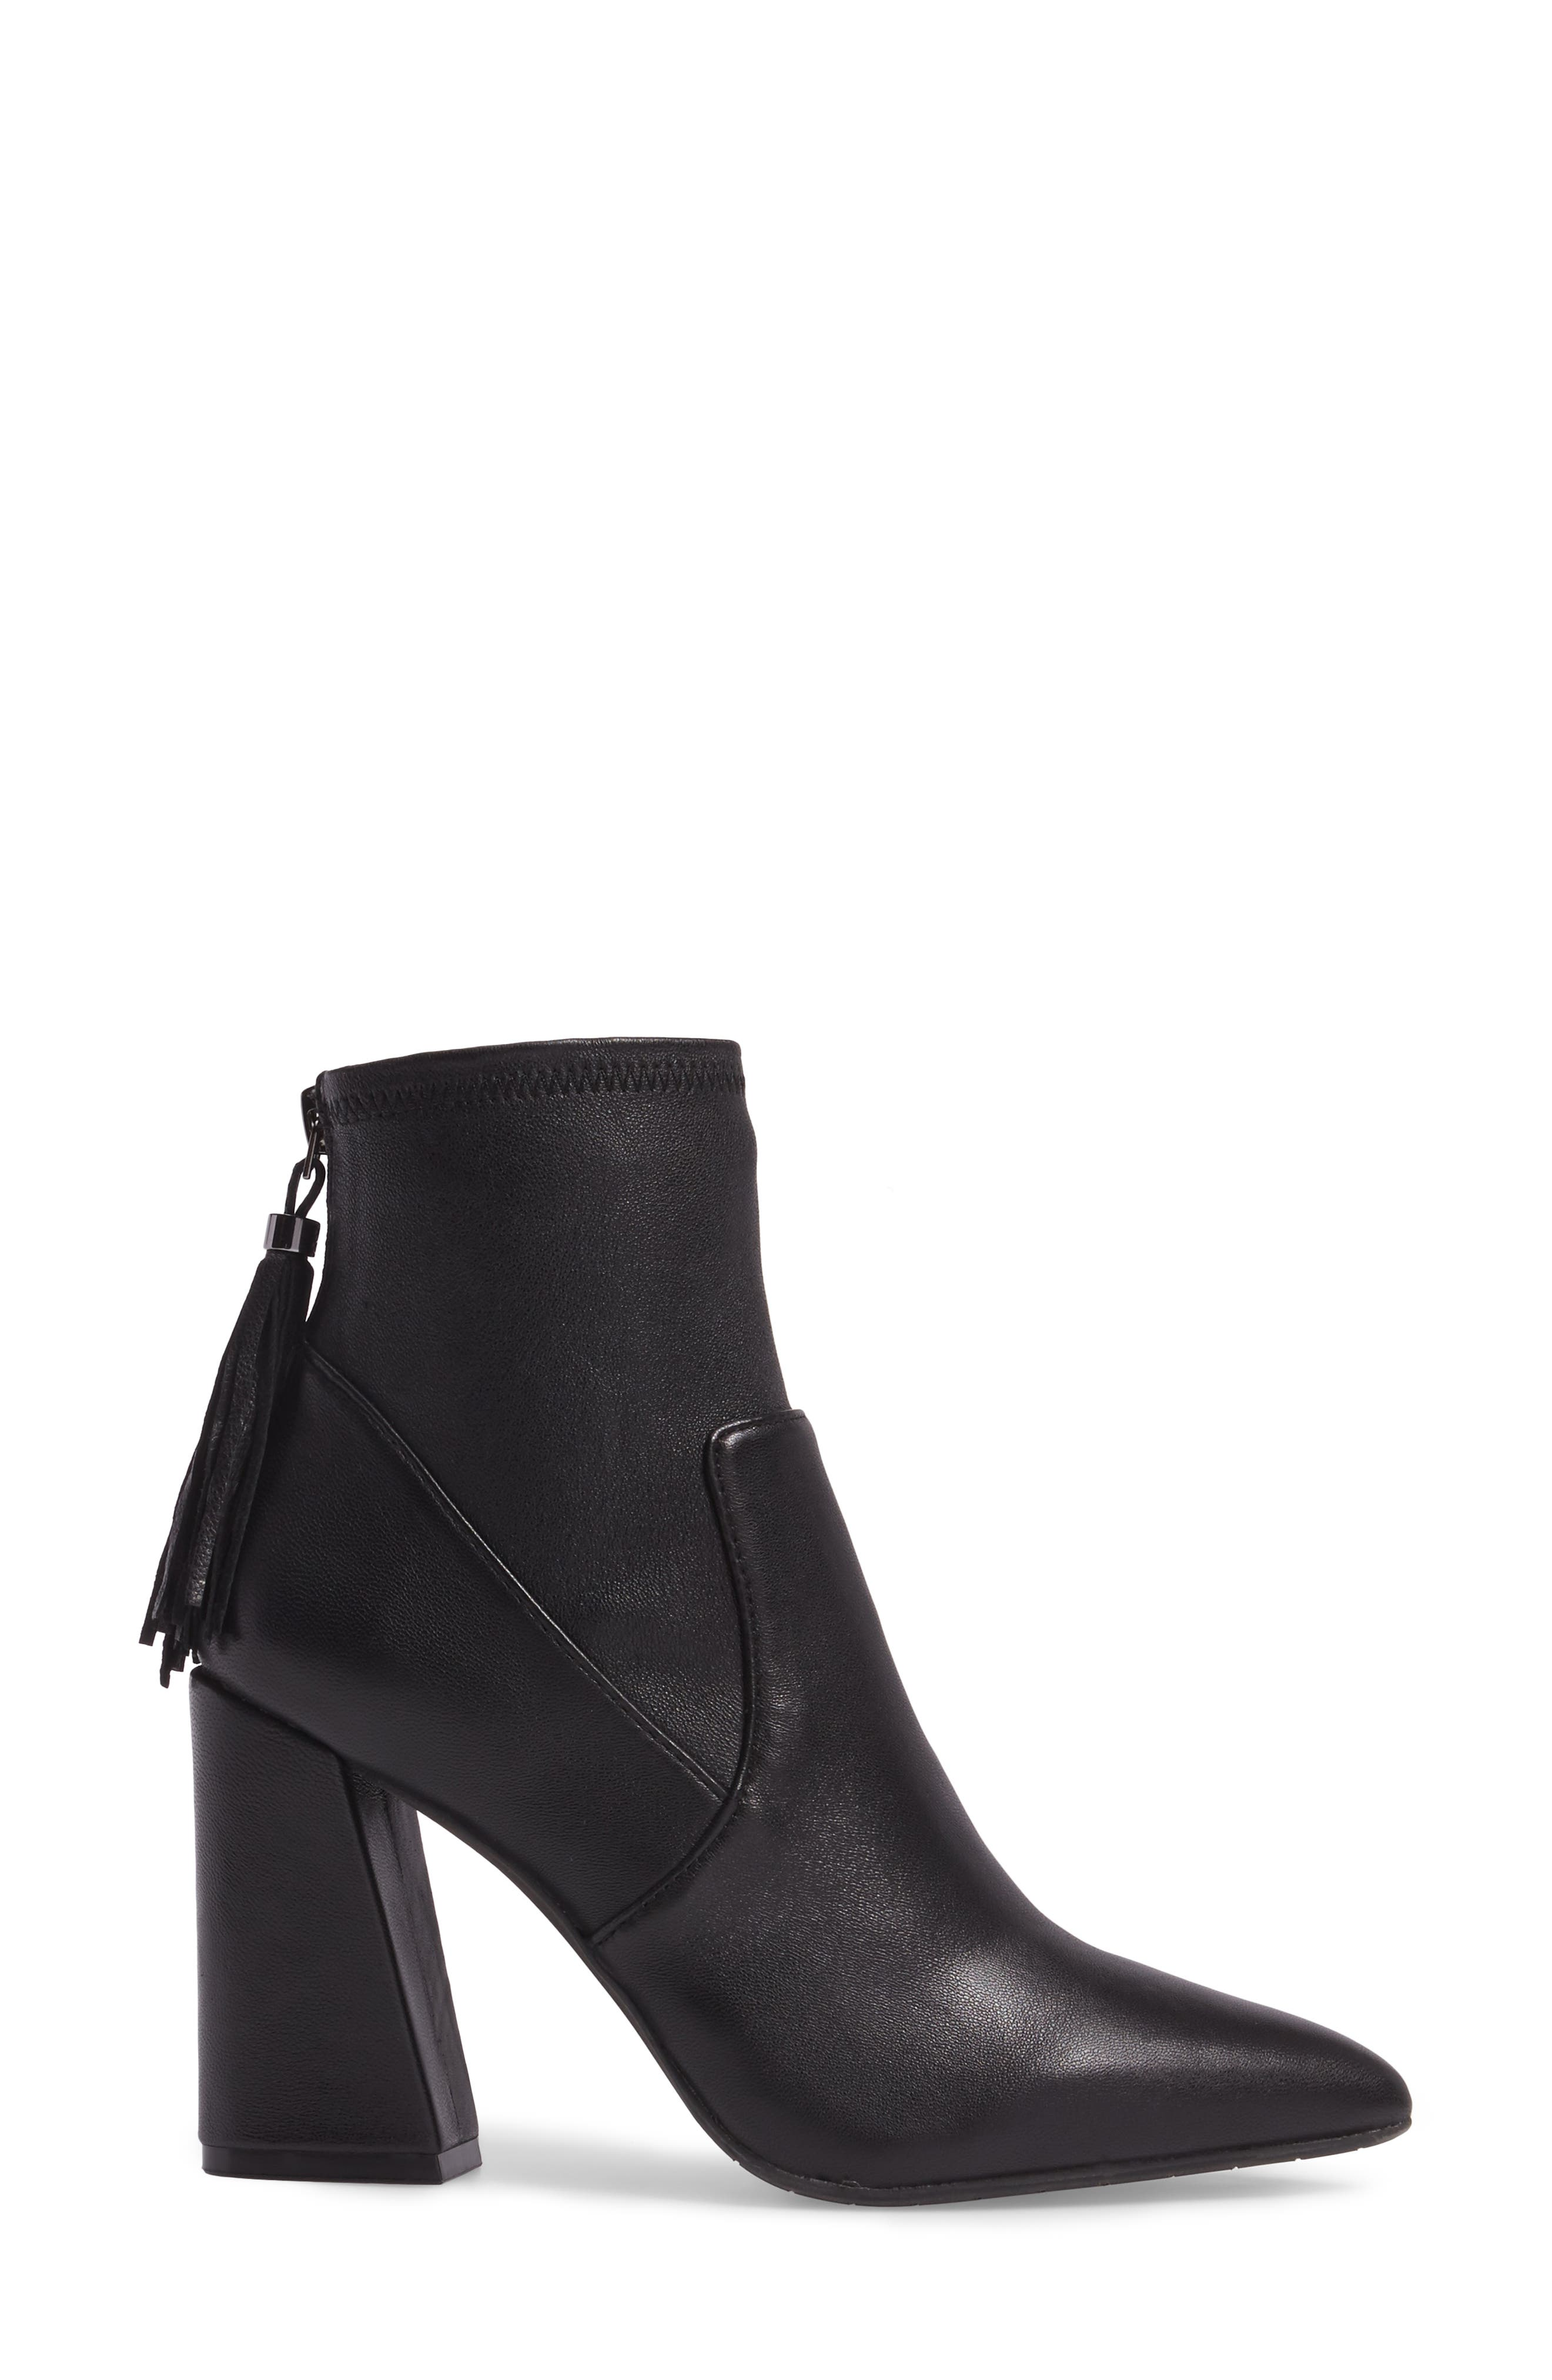 Gracelyn Pointy Toe Bootie,                             Alternate thumbnail 3, color,                             001